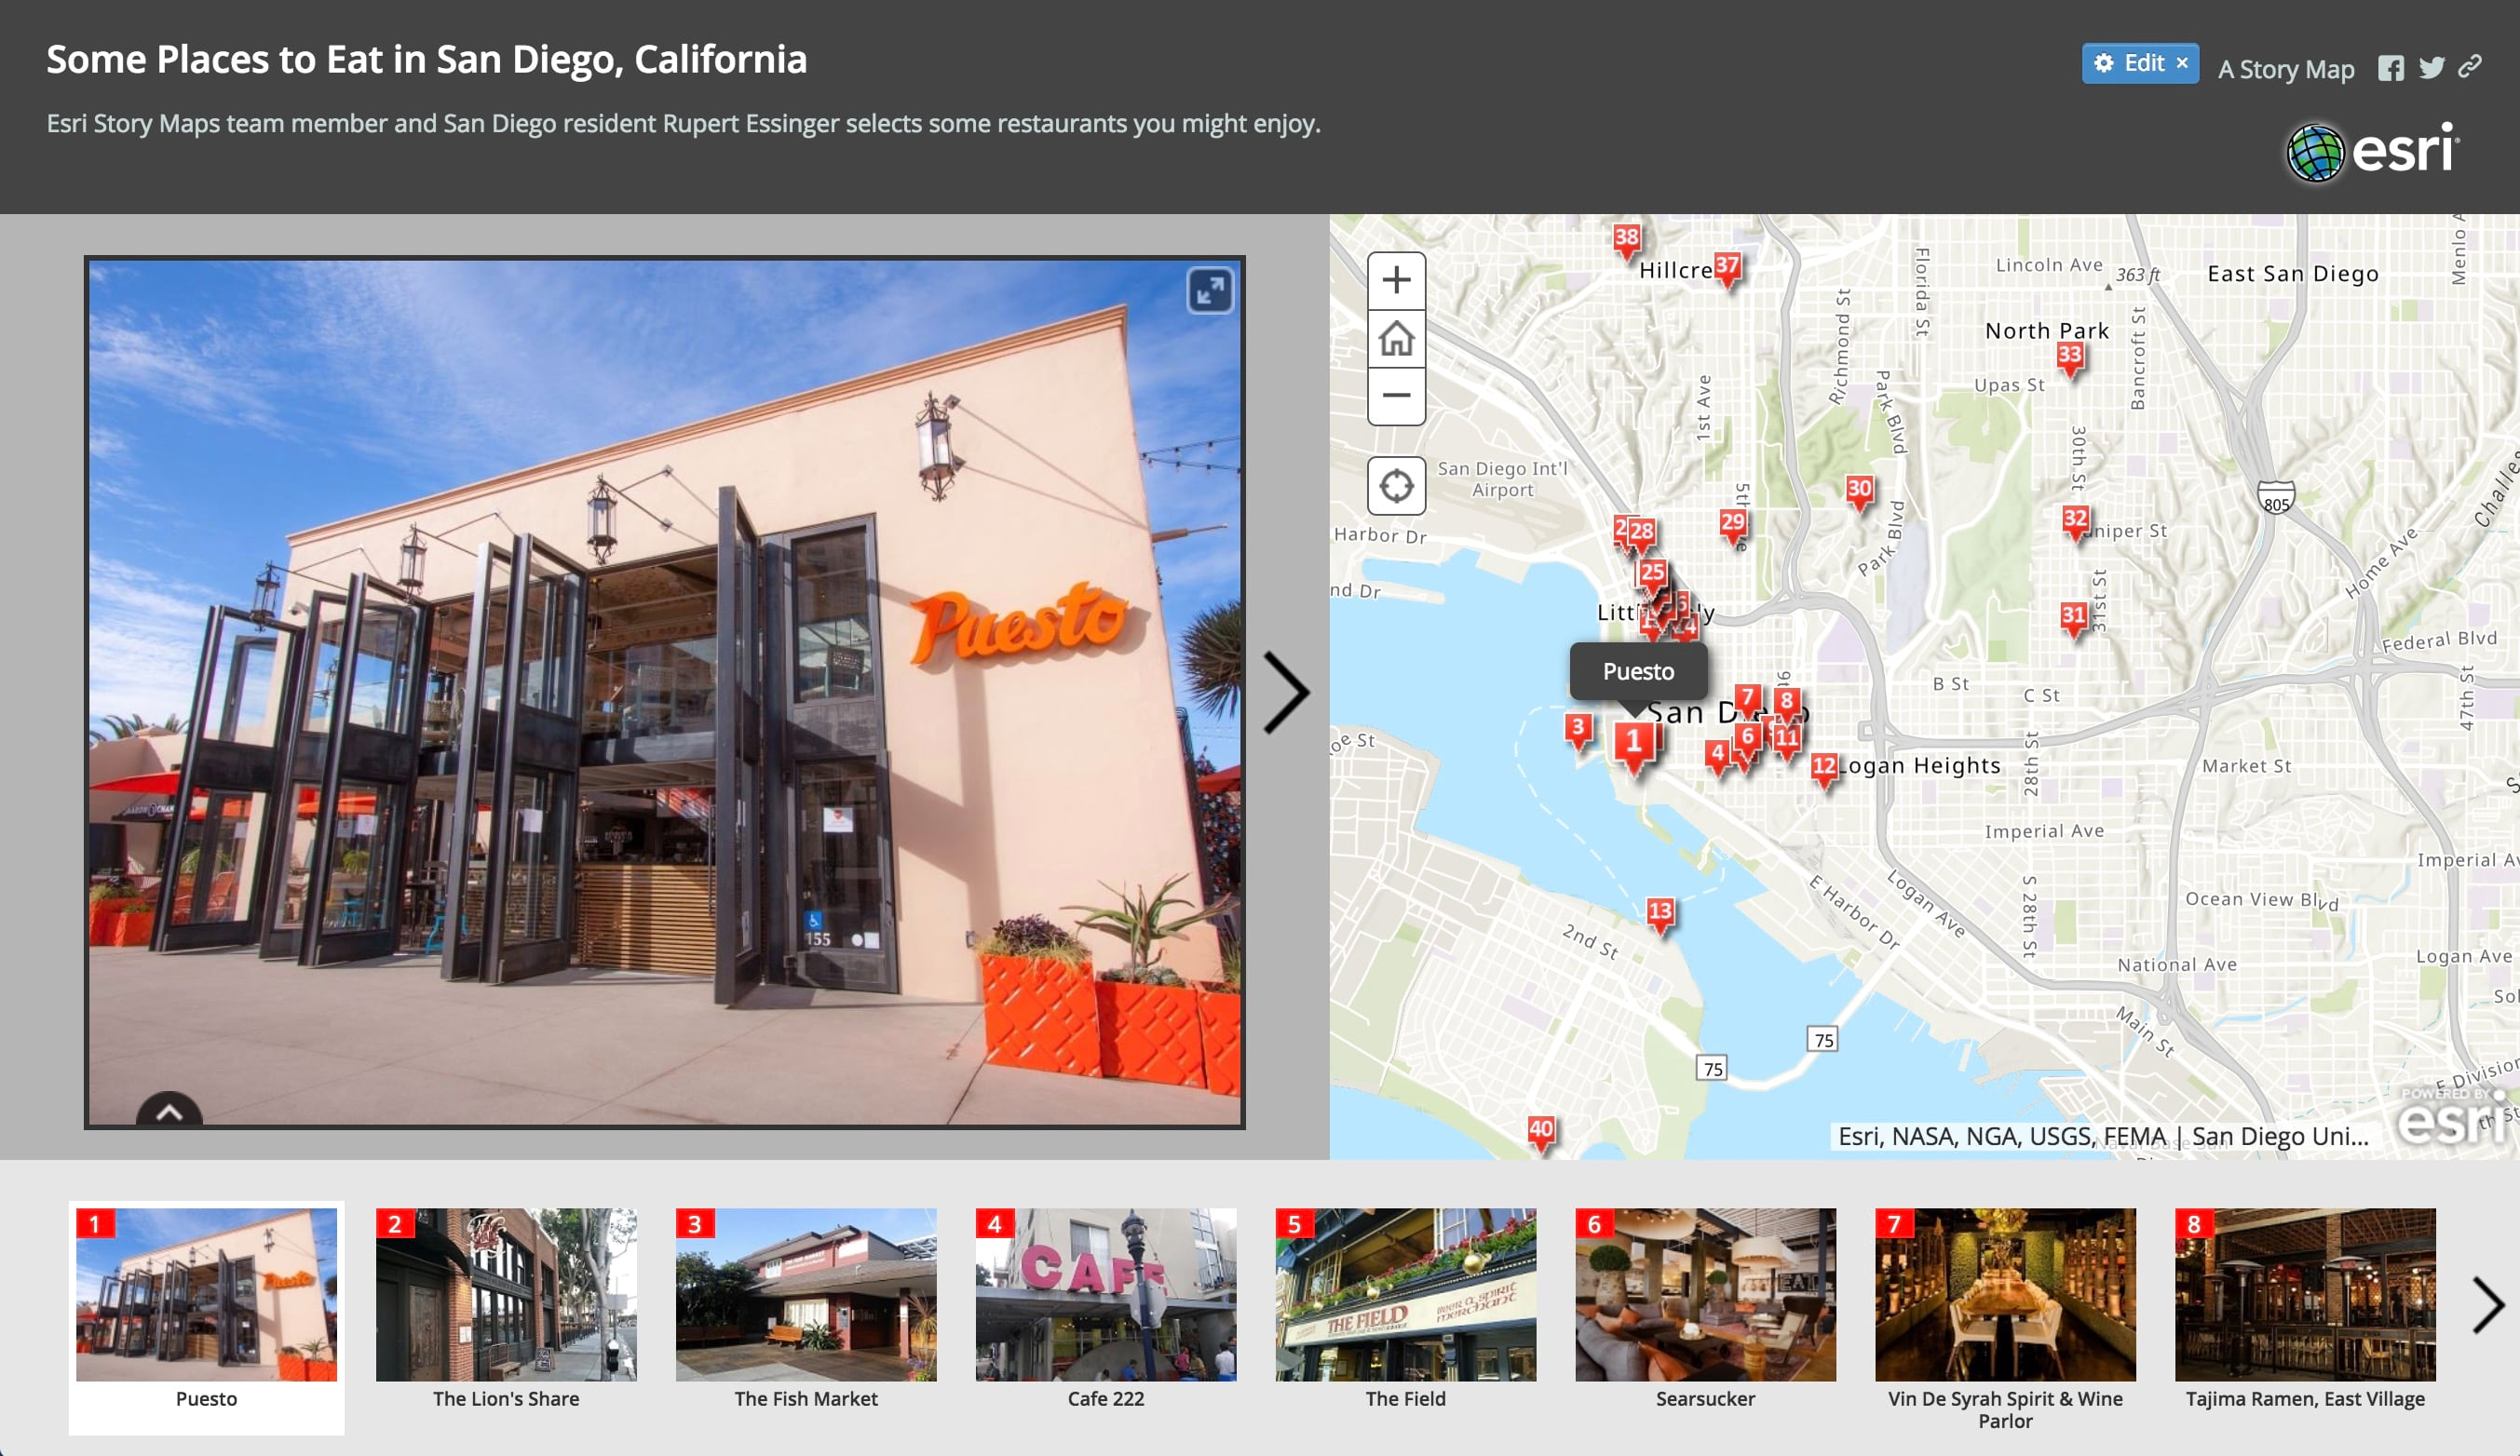 Some Places to Eat in San Diego story map